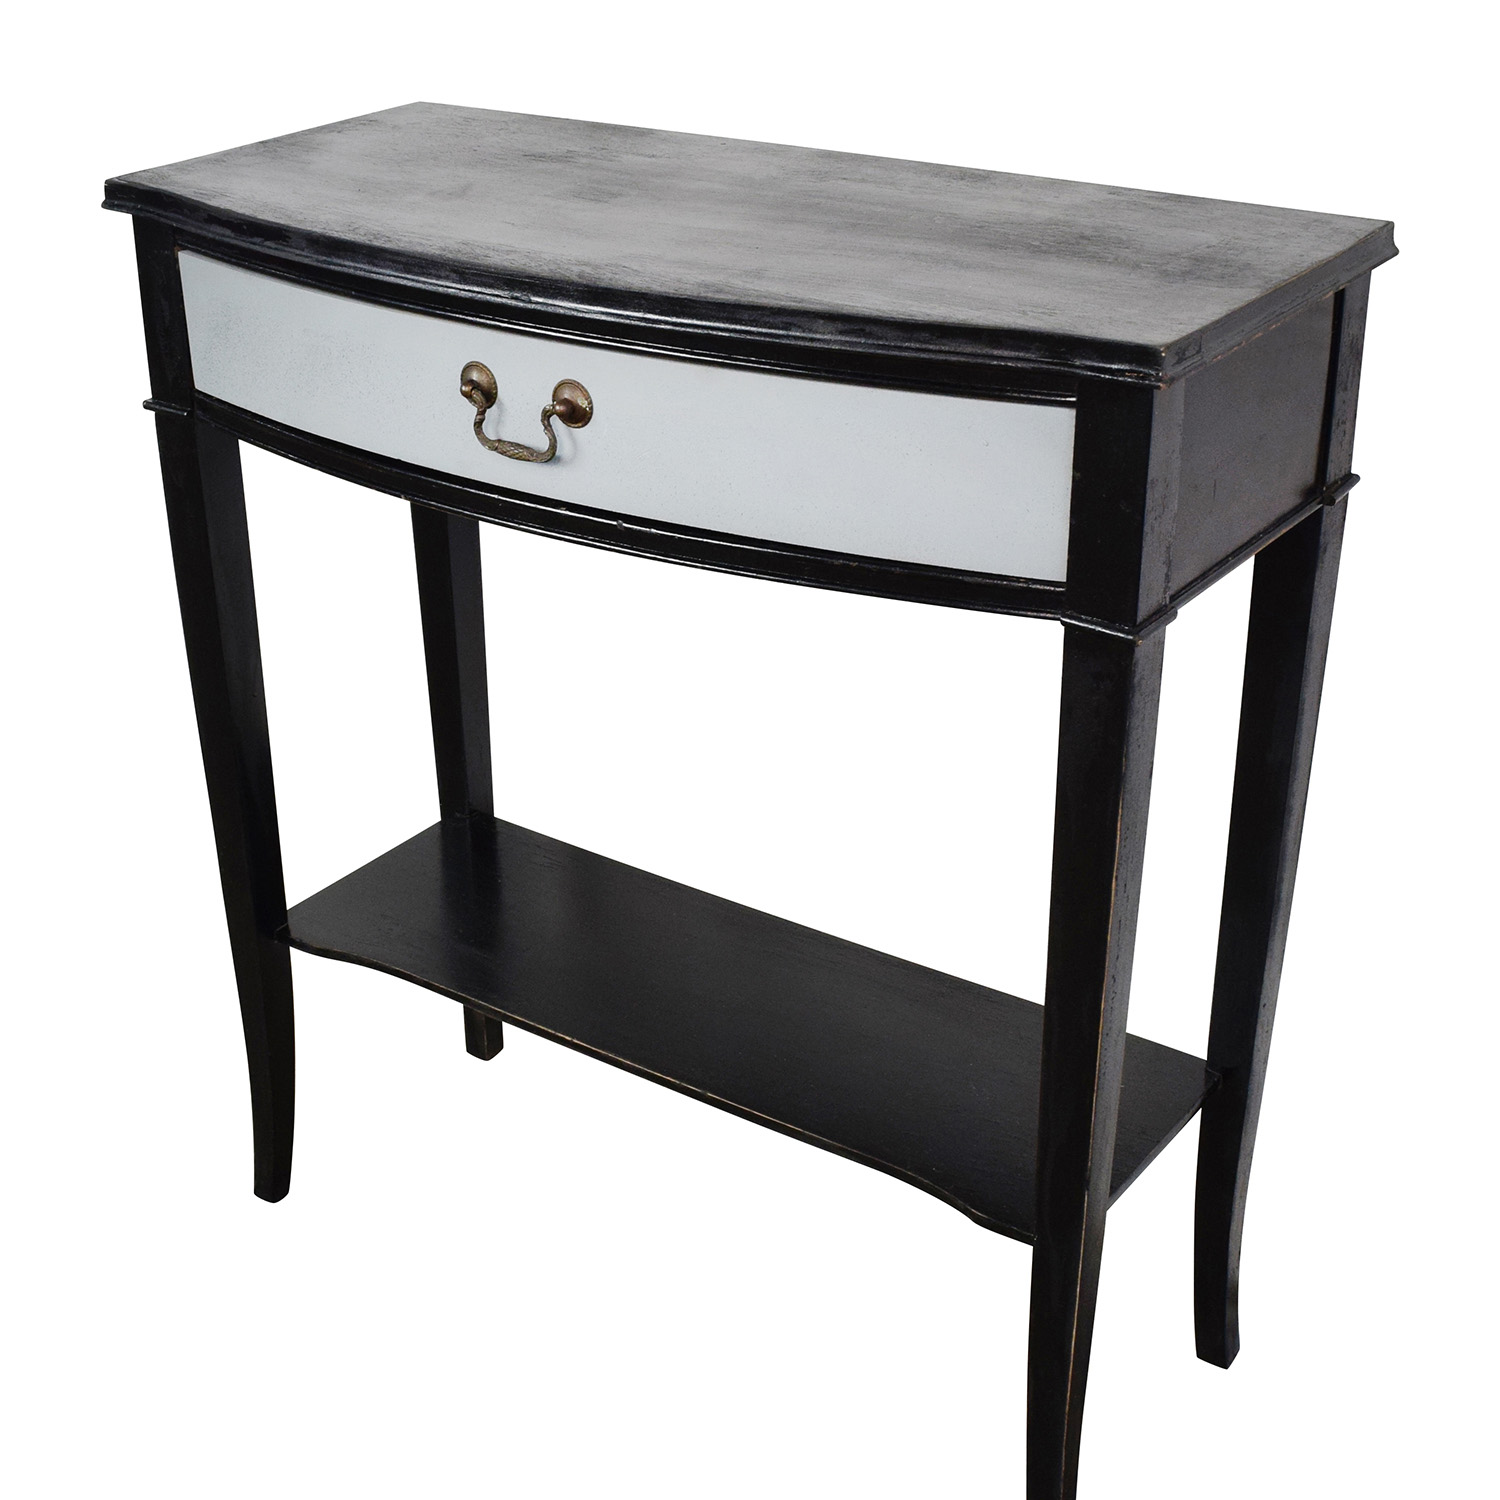 74 off etsy etsy vintage black and grey console table for Sofa table grey